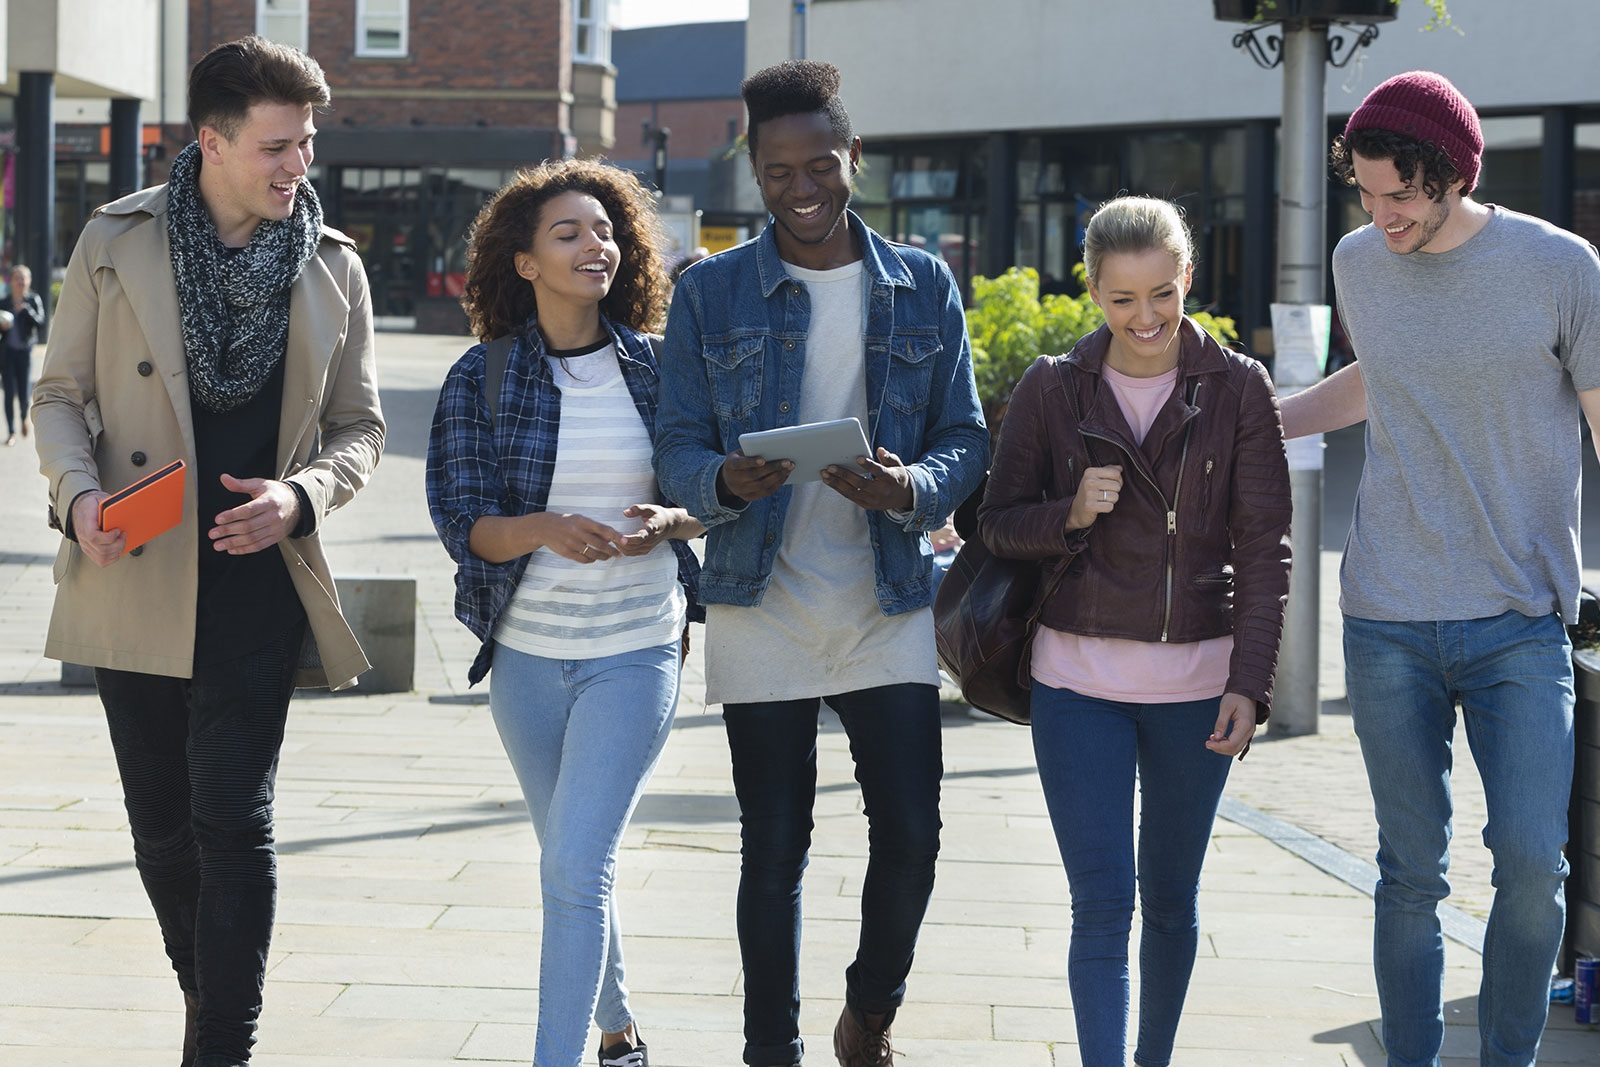 What's the Role of Higher Education in a Digital Society?